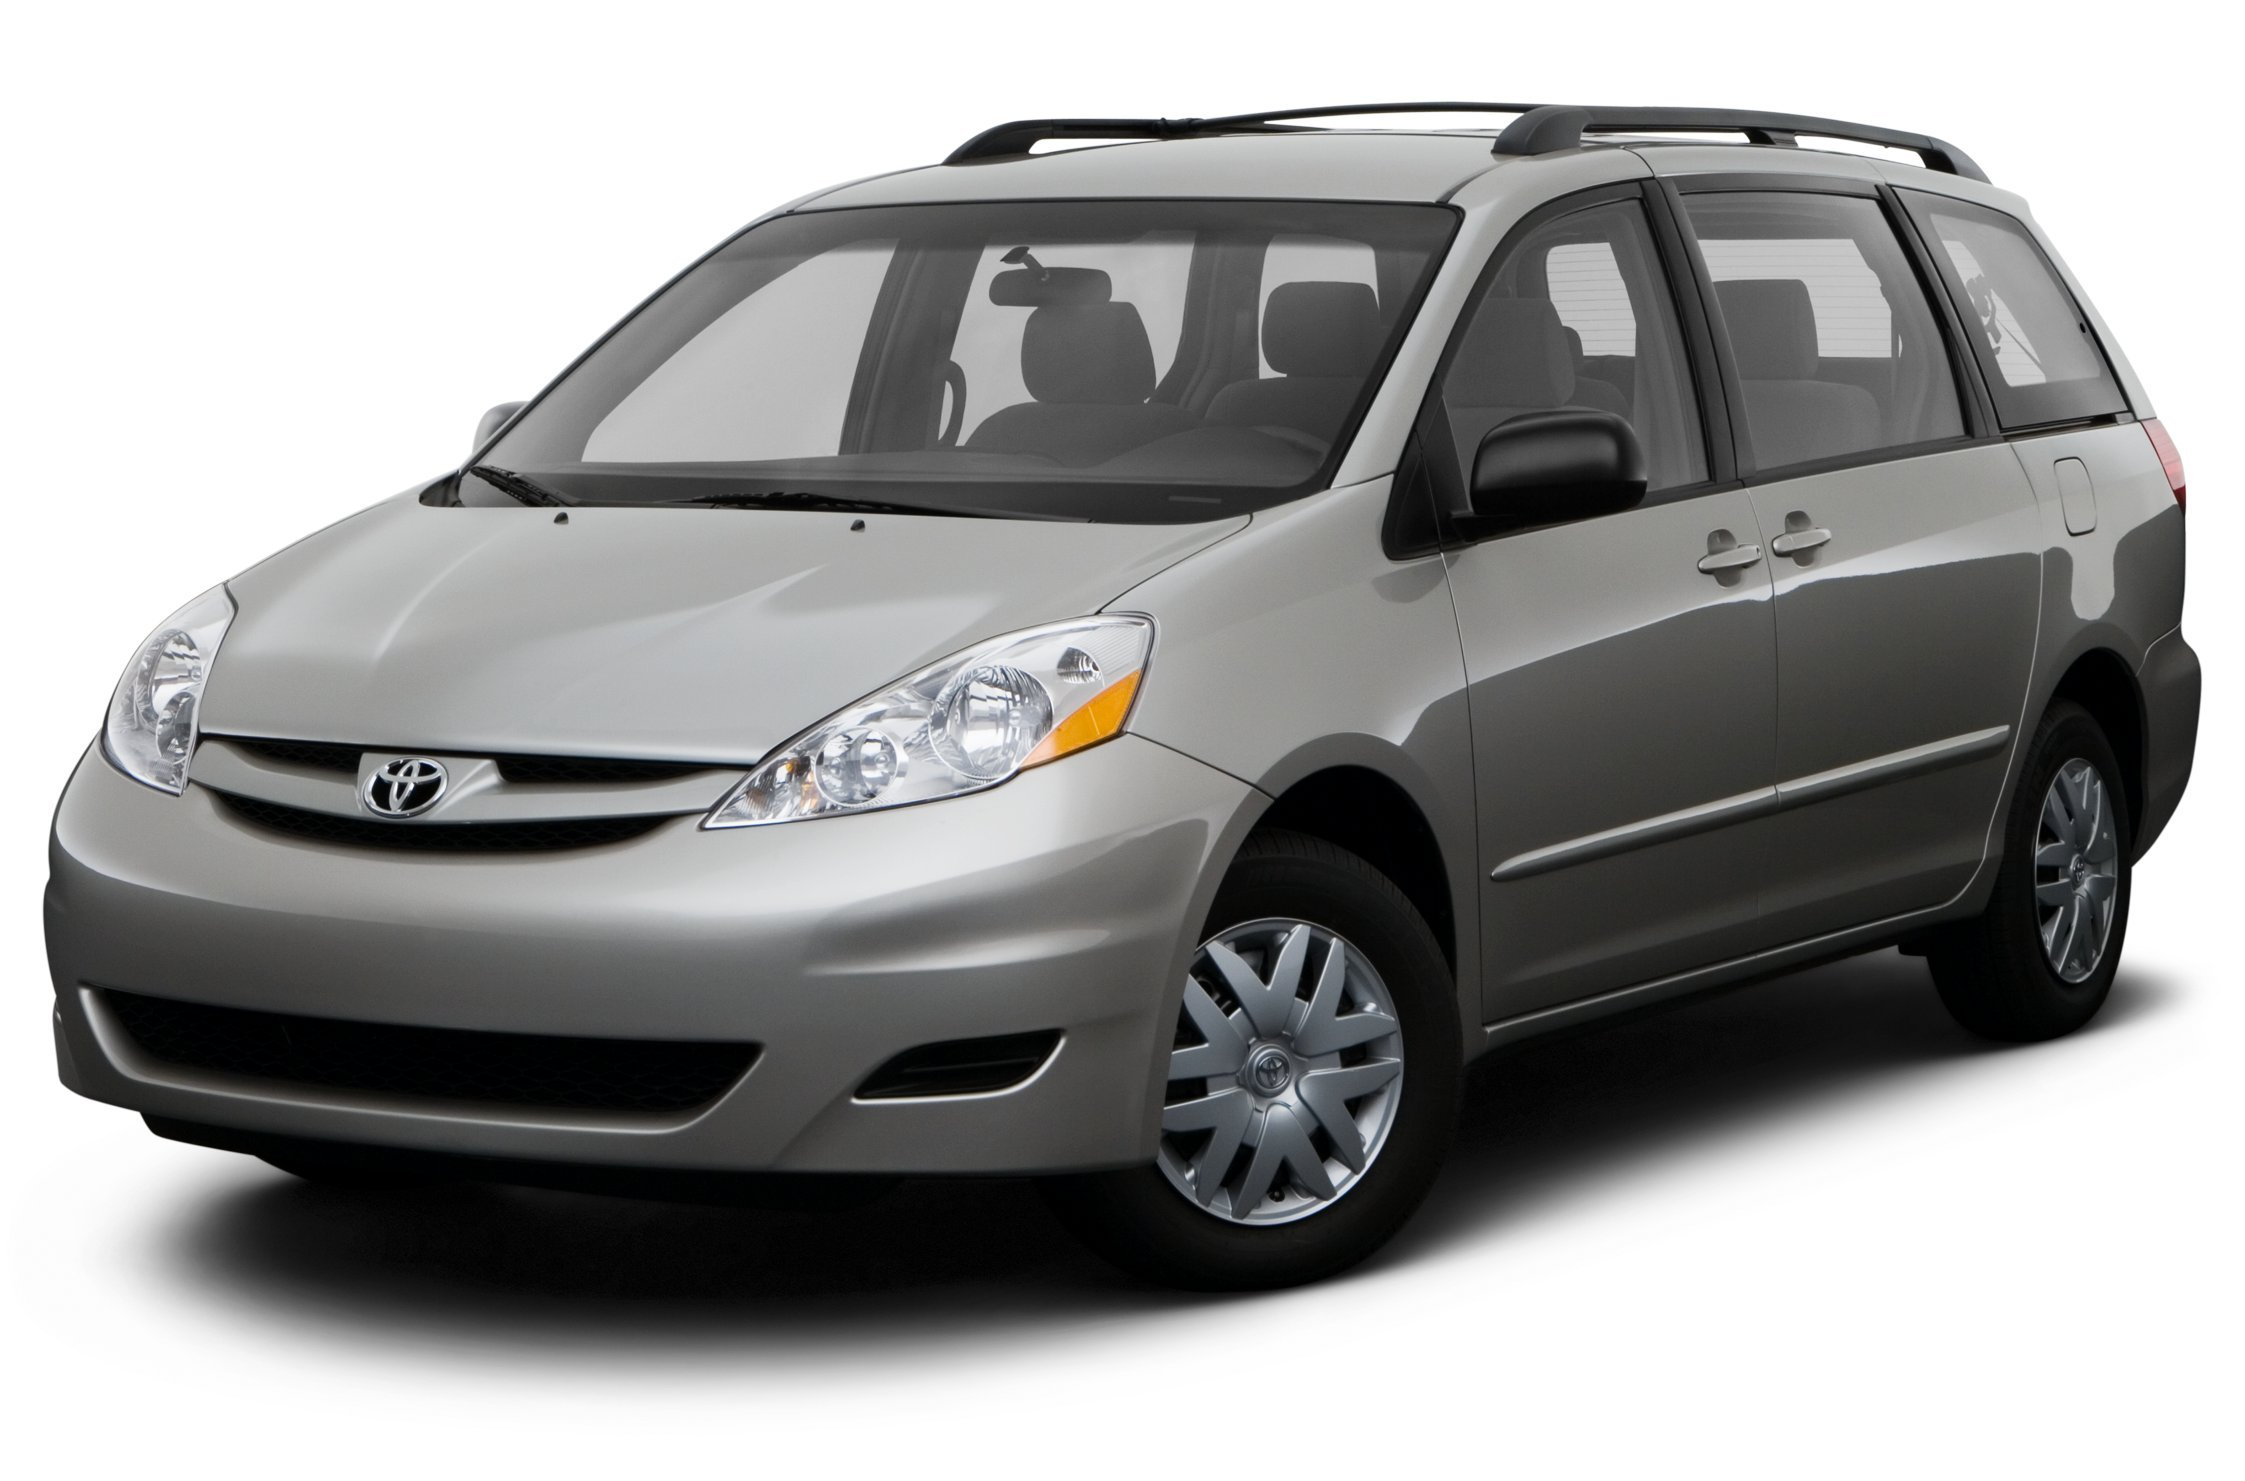 2008 honda odyssey reviews images and specs. Black Bedroom Furniture Sets. Home Design Ideas